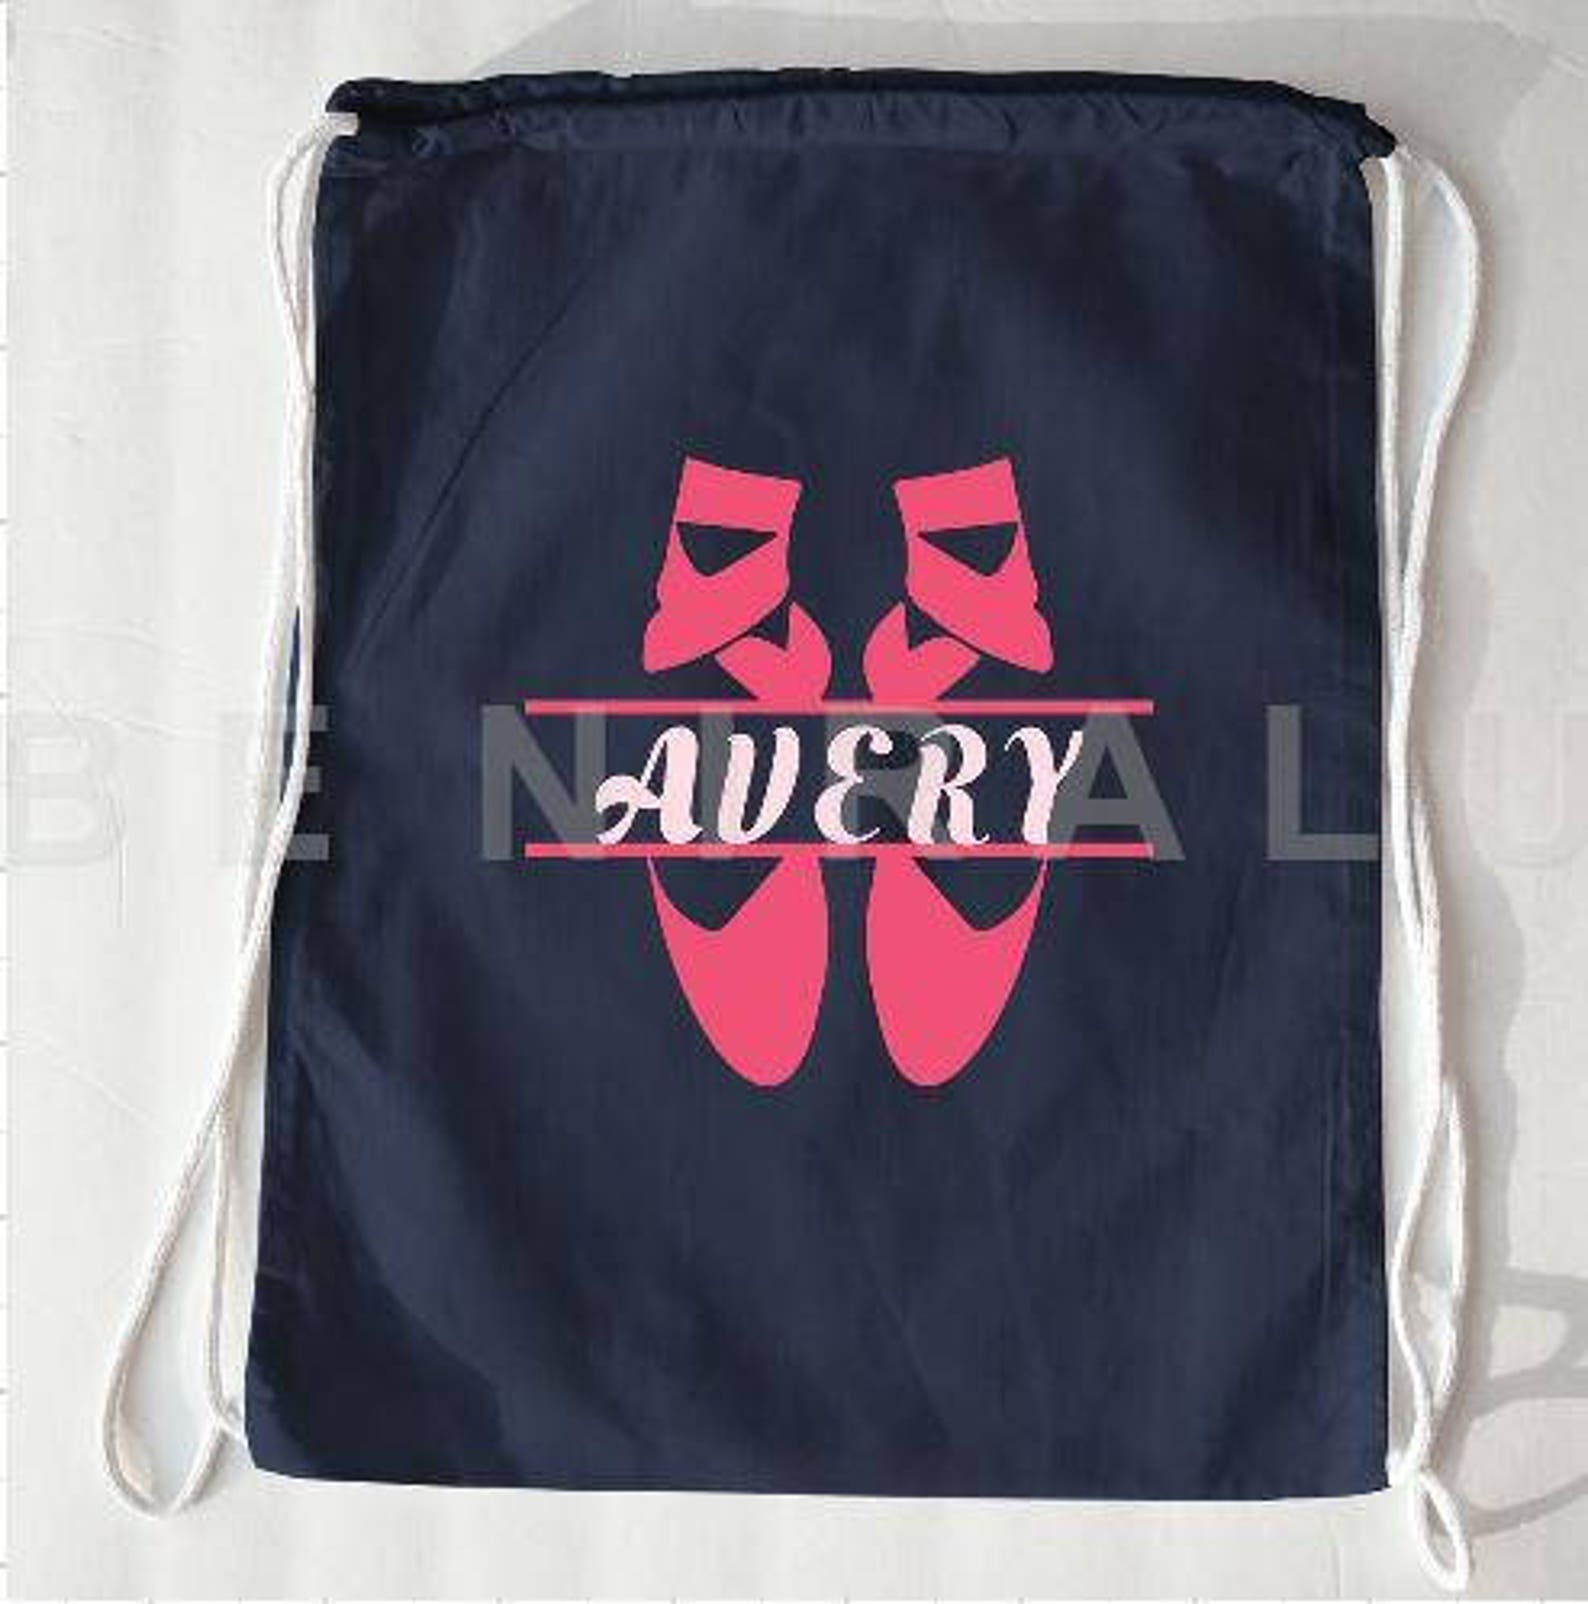 ballet drawstring bag | ballet bag | personalized ballet bag | girls dance bags | ballet gifts | personalized dance bag | ballet